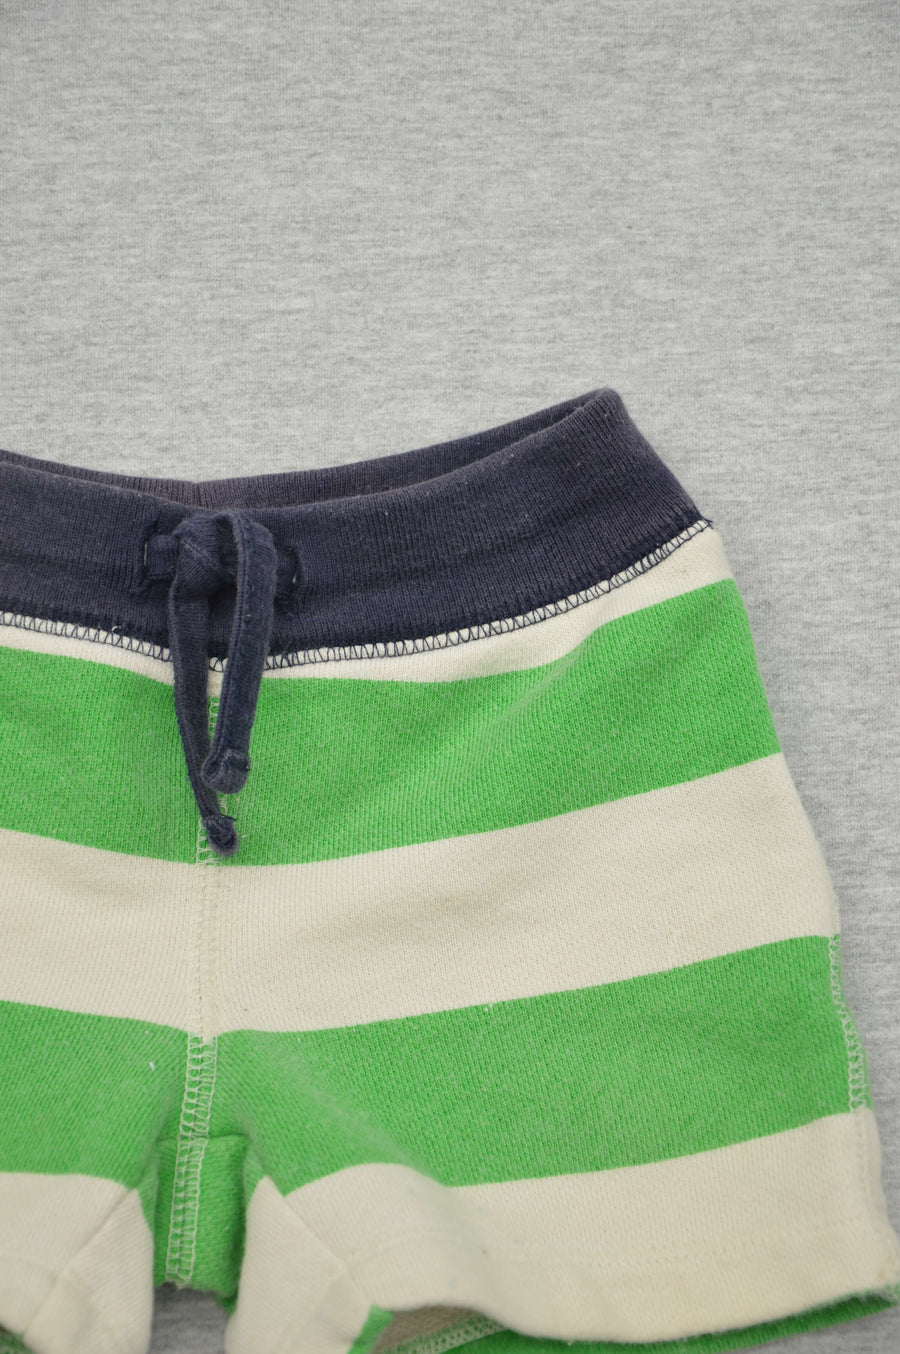 Gap cream & green striped shorts, size 3-6m